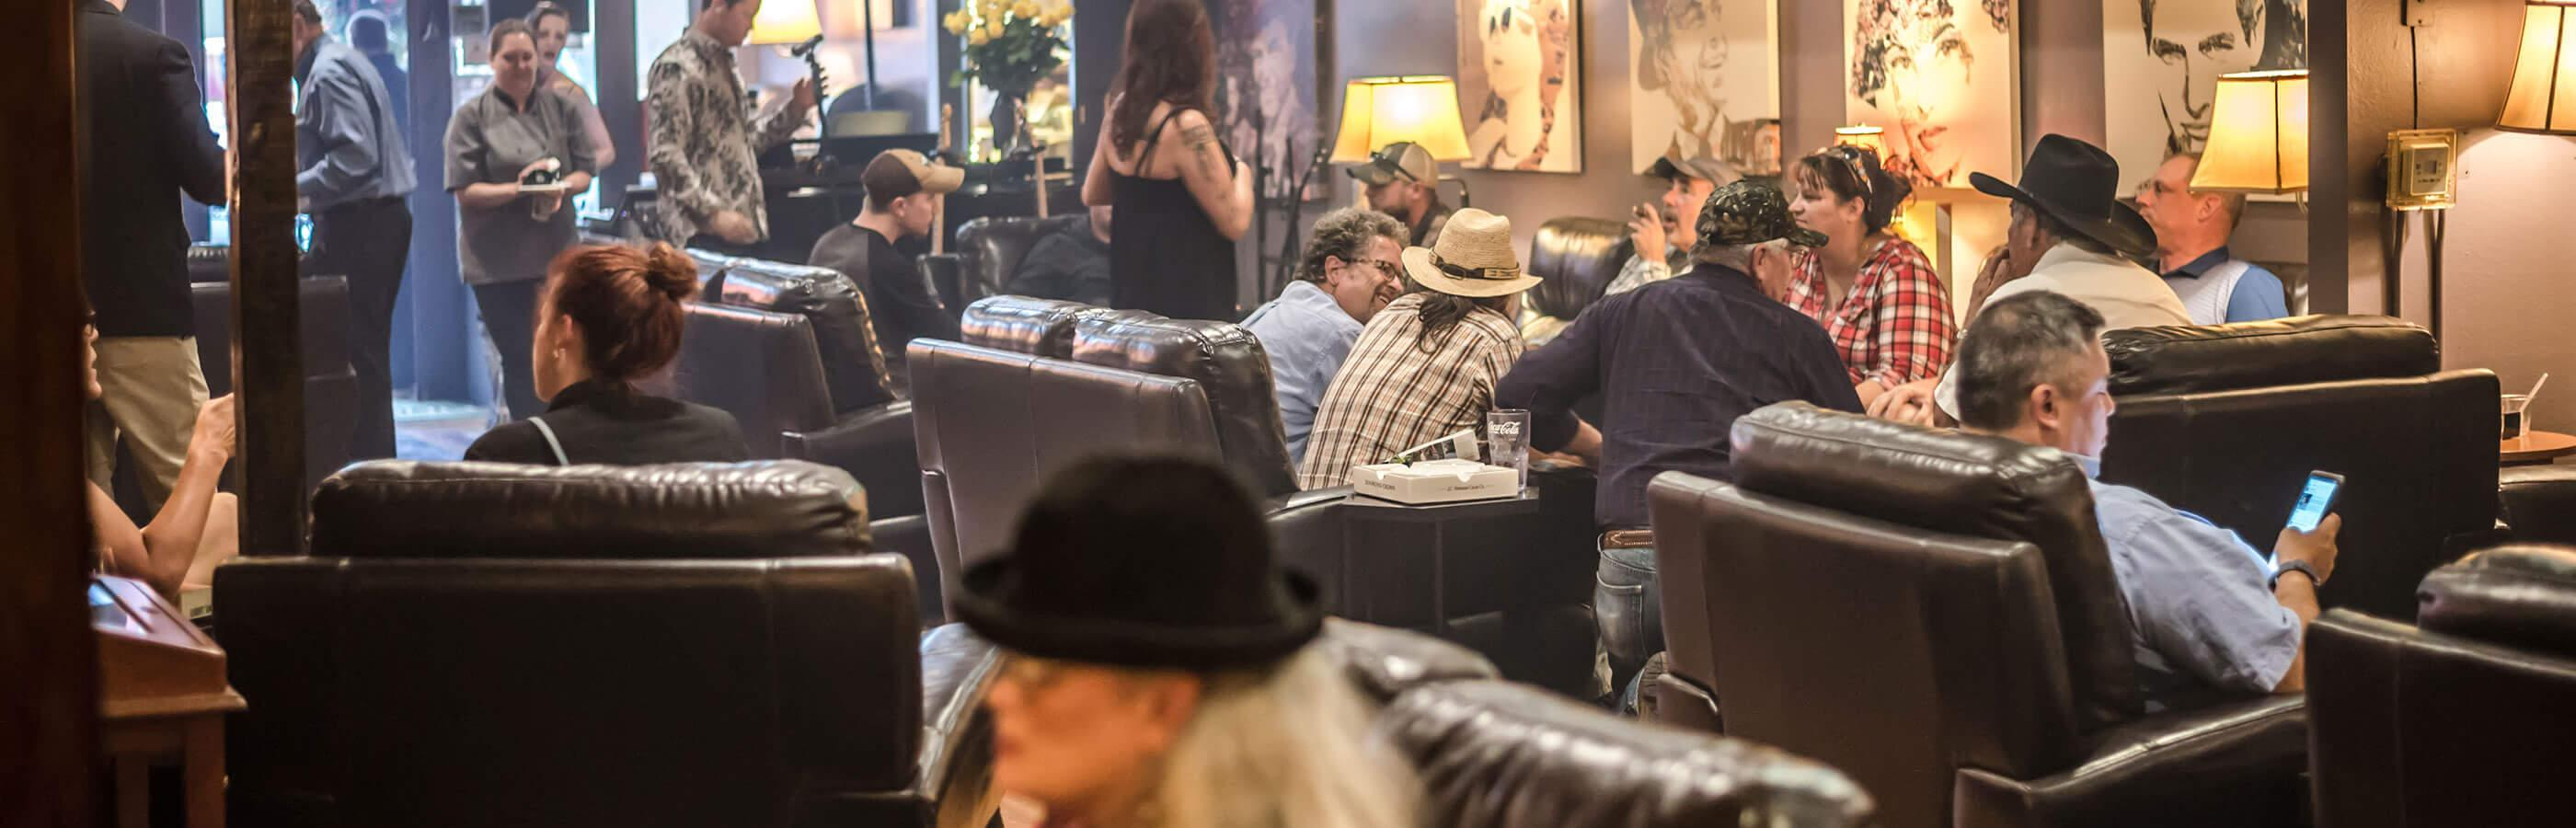 Inside the Tinder Box Cigar Lounge in Rapid City